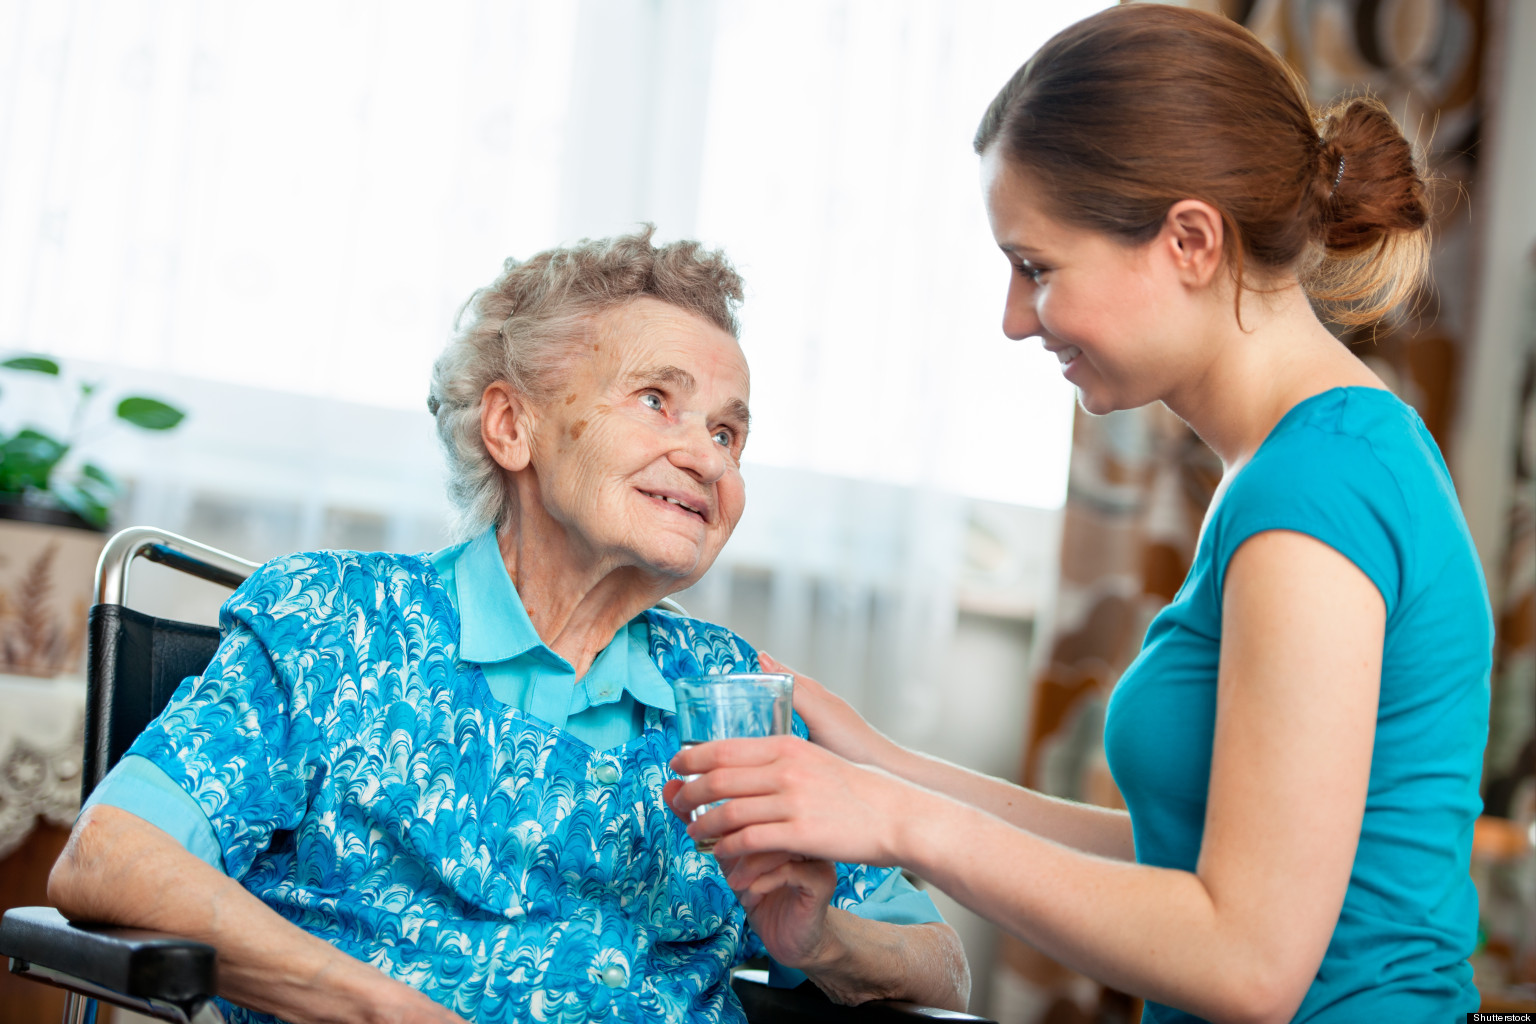 Caring for the elderly is much easier when you can maintain a positive attitude.